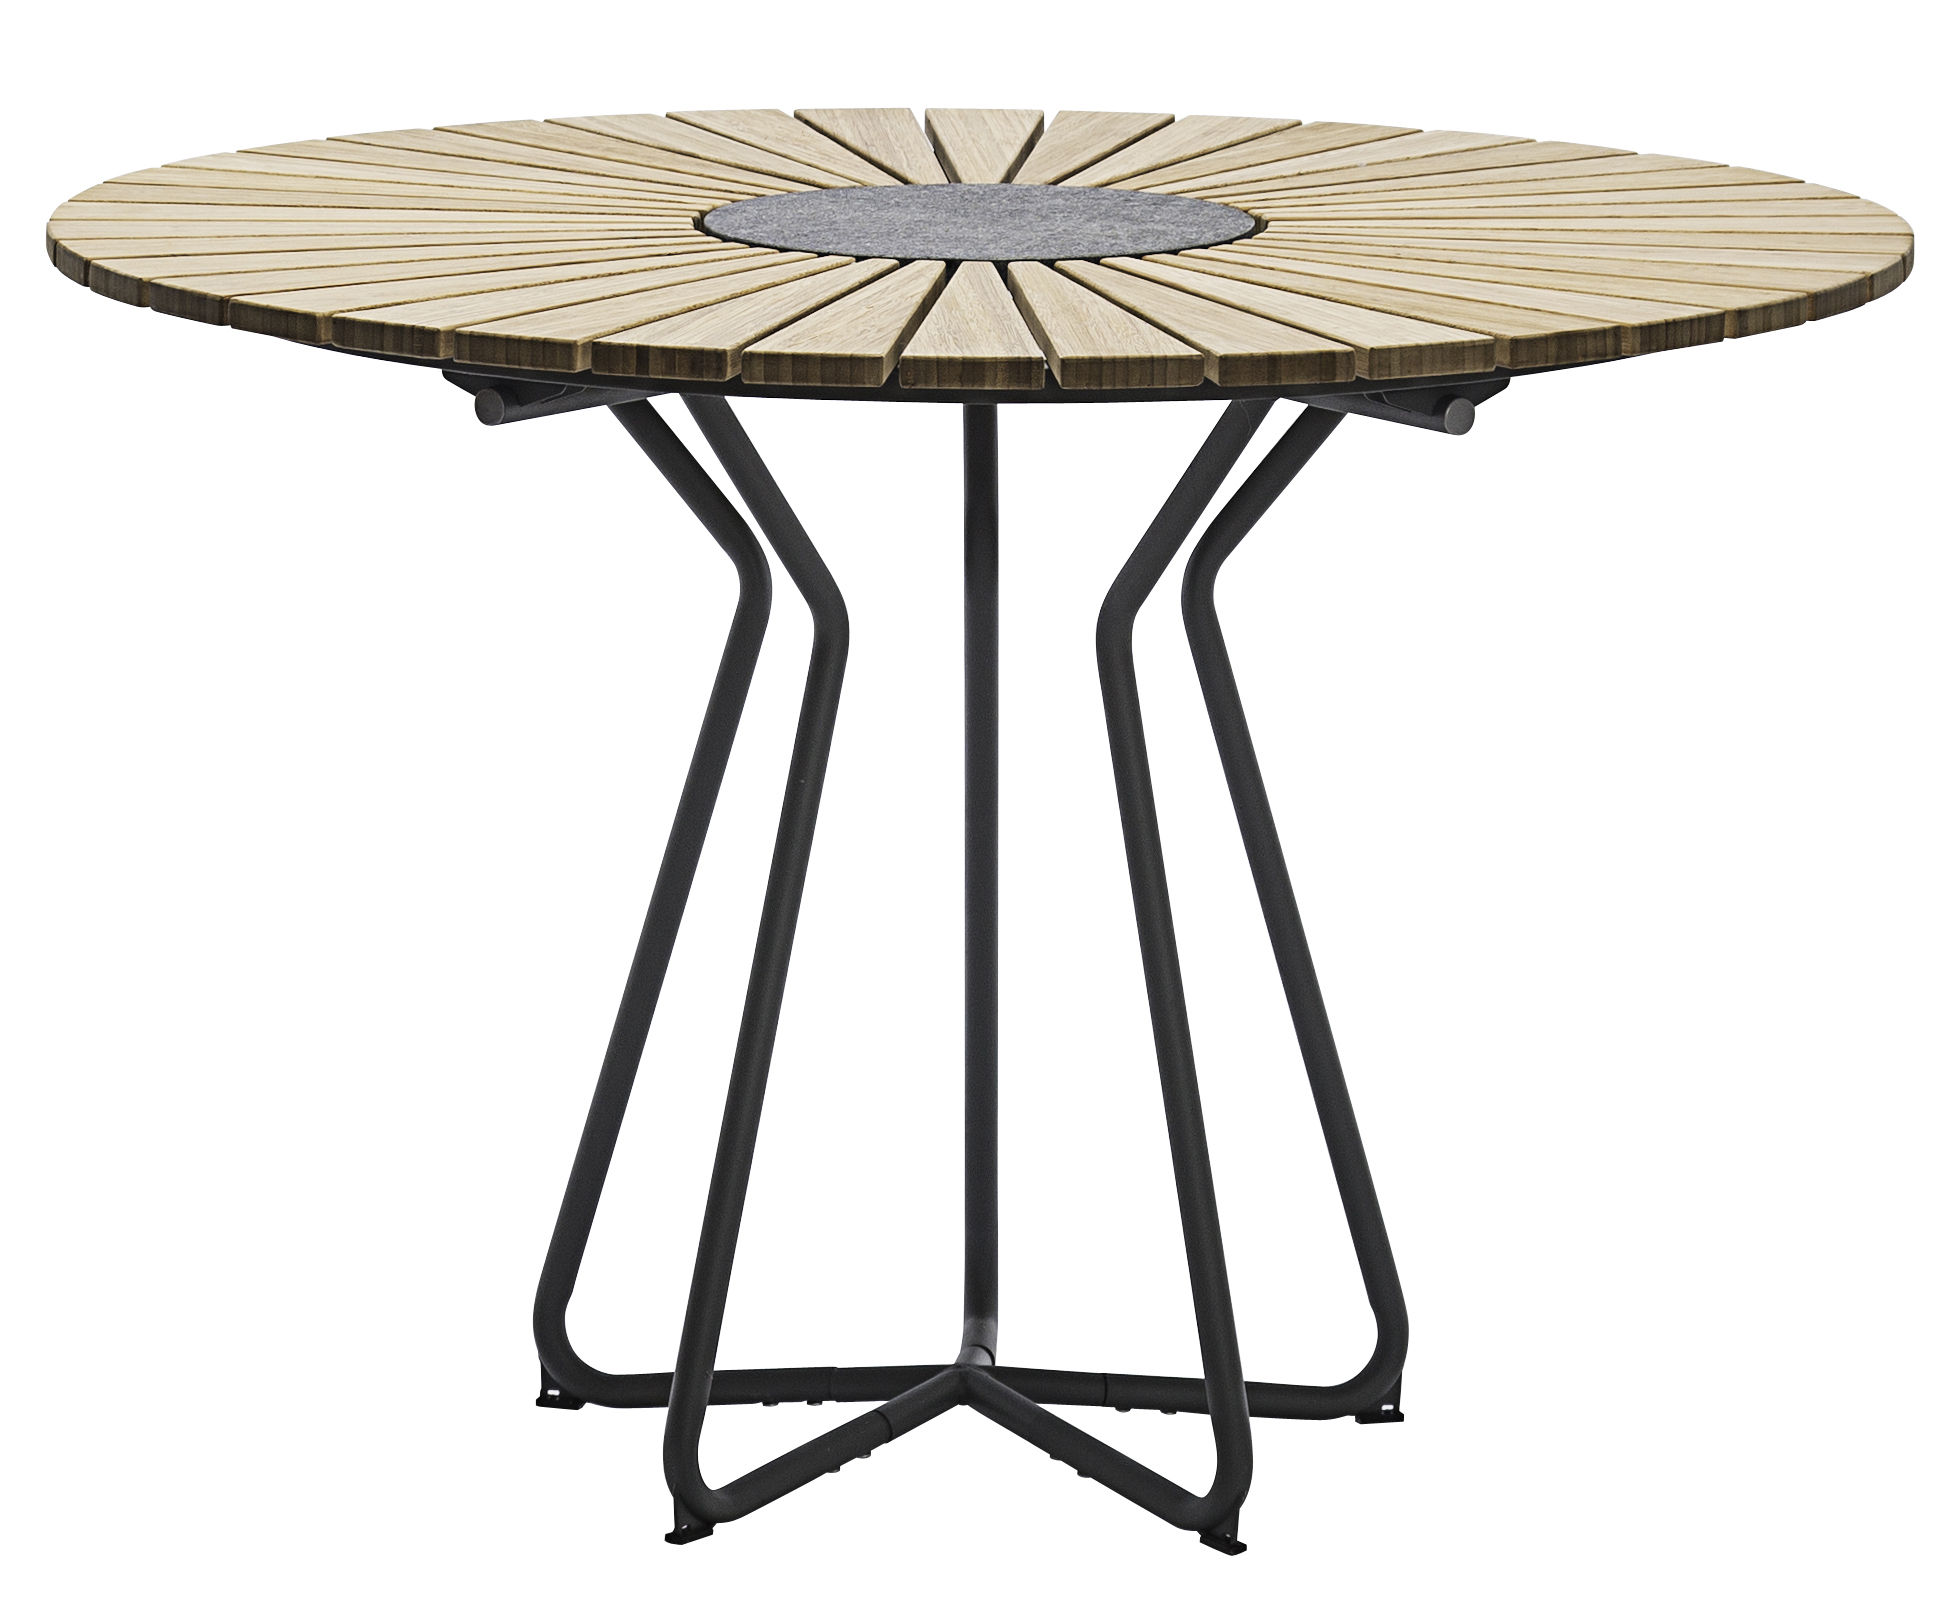 circle garden table 110 cm bamboo grey feet by houe. Black Bedroom Furniture Sets. Home Design Ideas